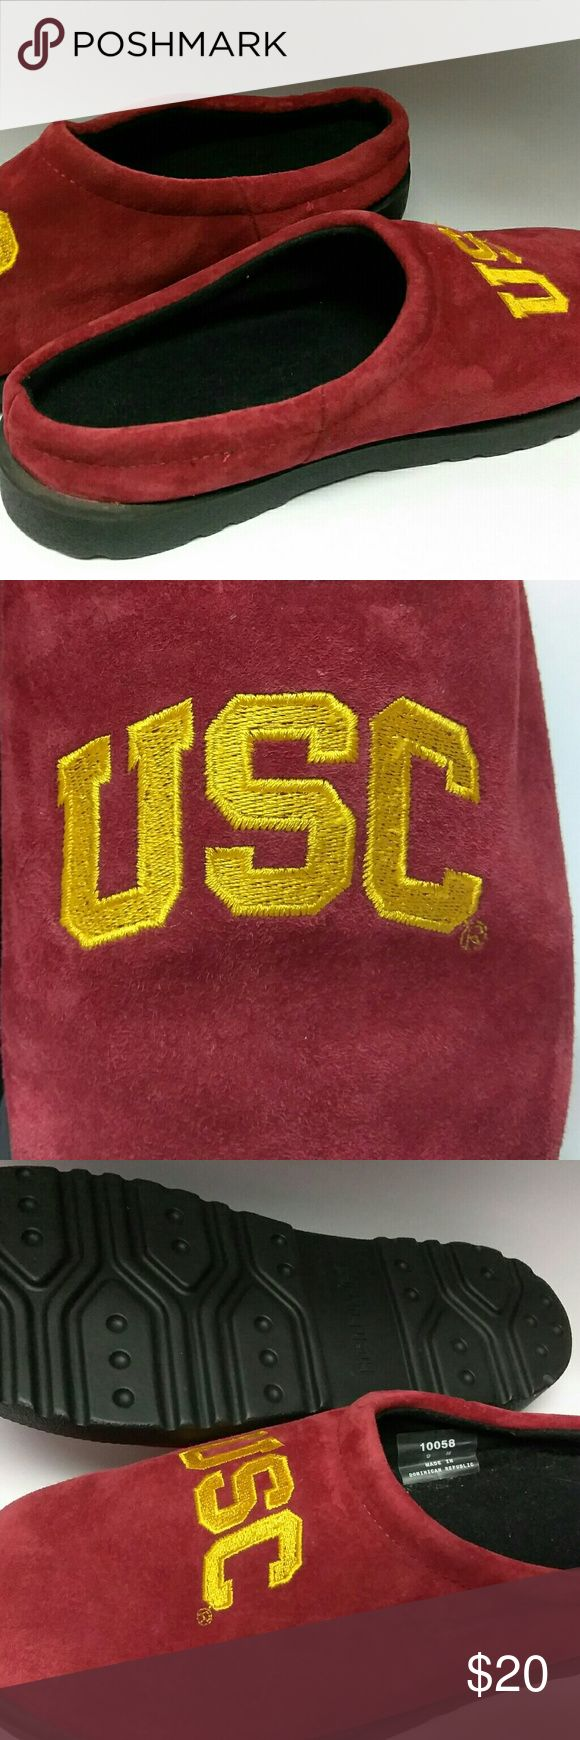 Unisex USC trojans slippers Cardinal red and gold slippers.  Never been used.  Size 8M and 9M Hush Puppies Shoes Slippers